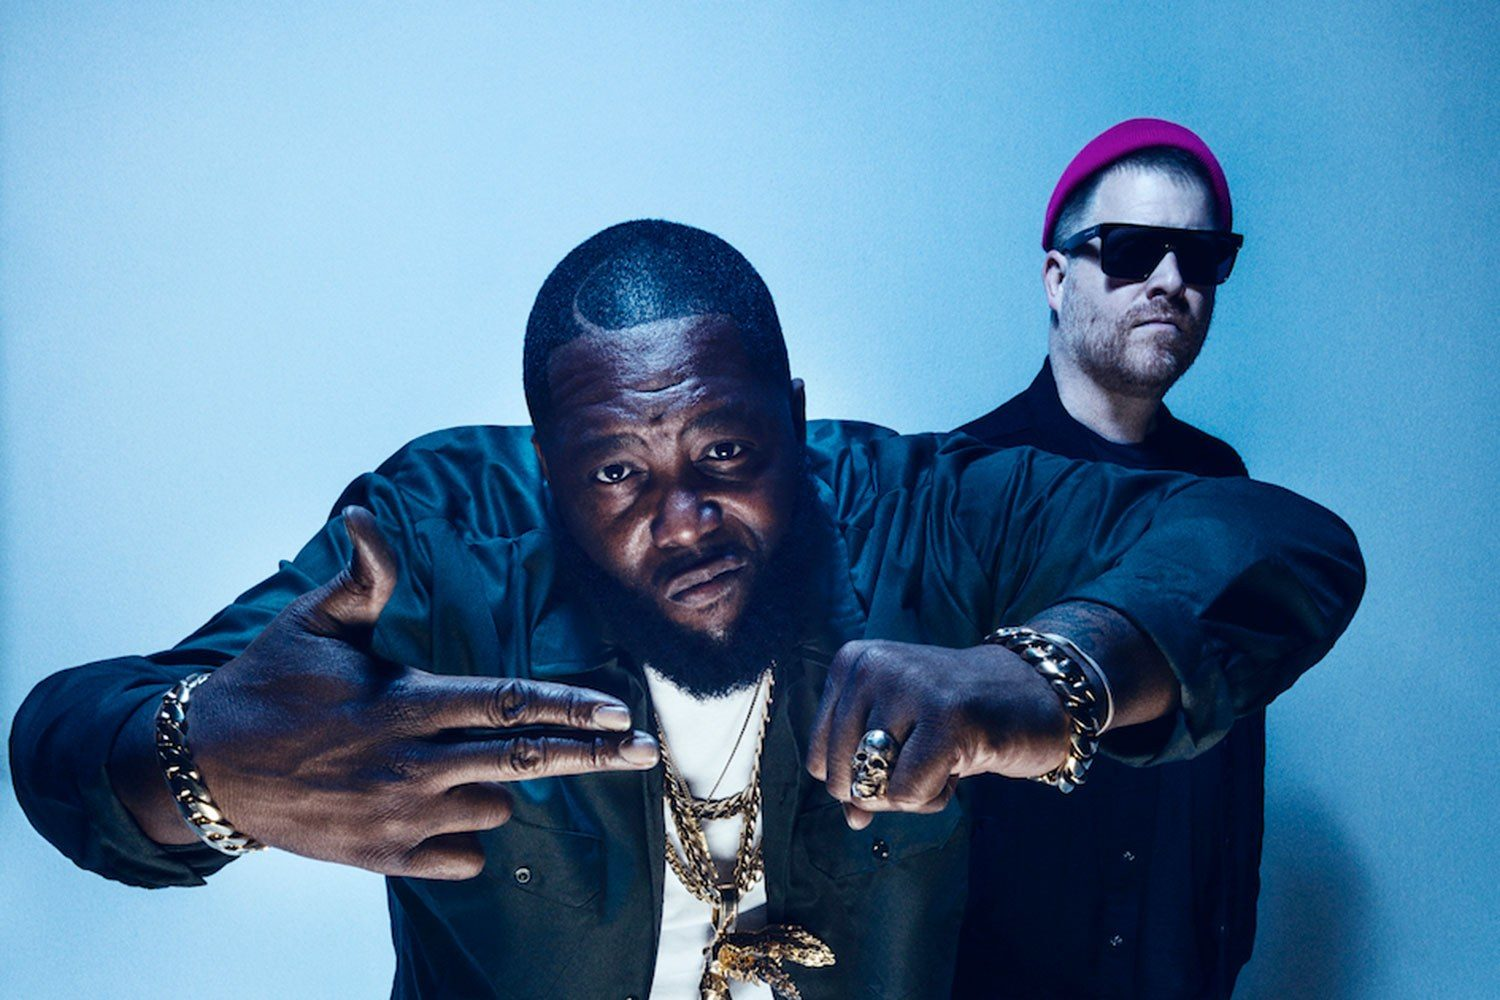 Run The Jewels have released their new album 'RTJ4' two days early